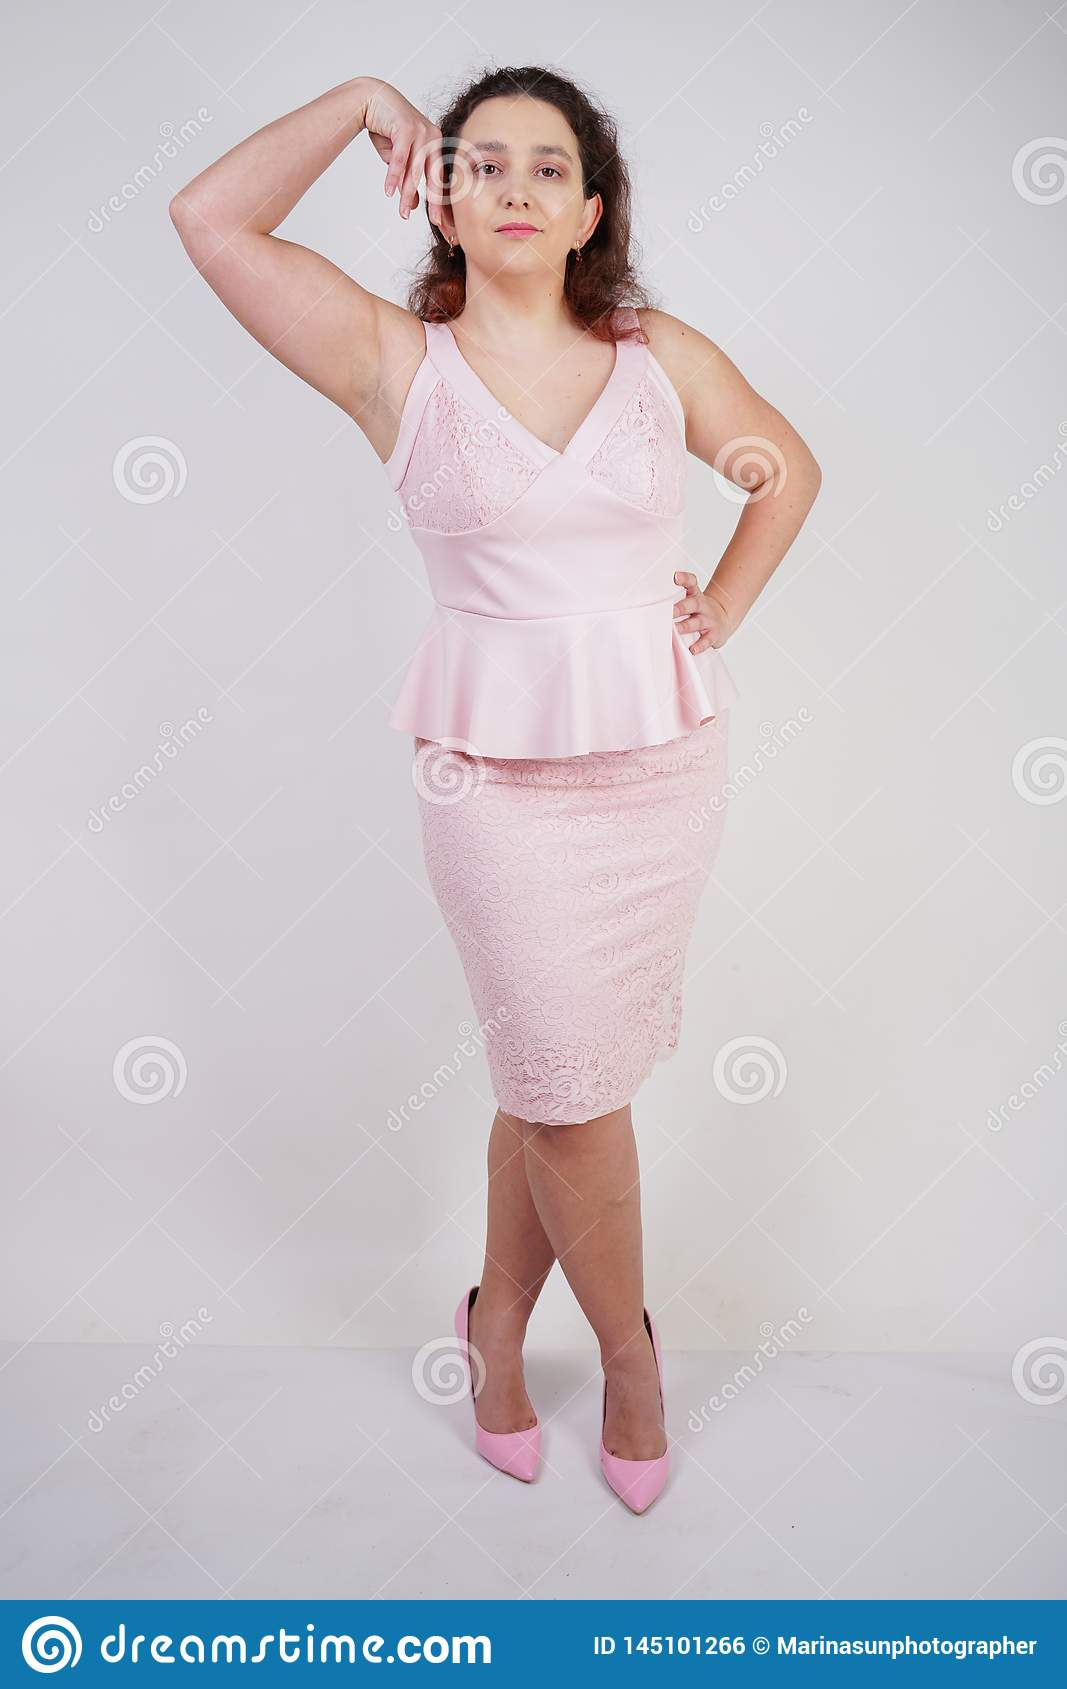 Trendy Plump Positive Woman With Plus Size Body Posing In Pink Cute ...